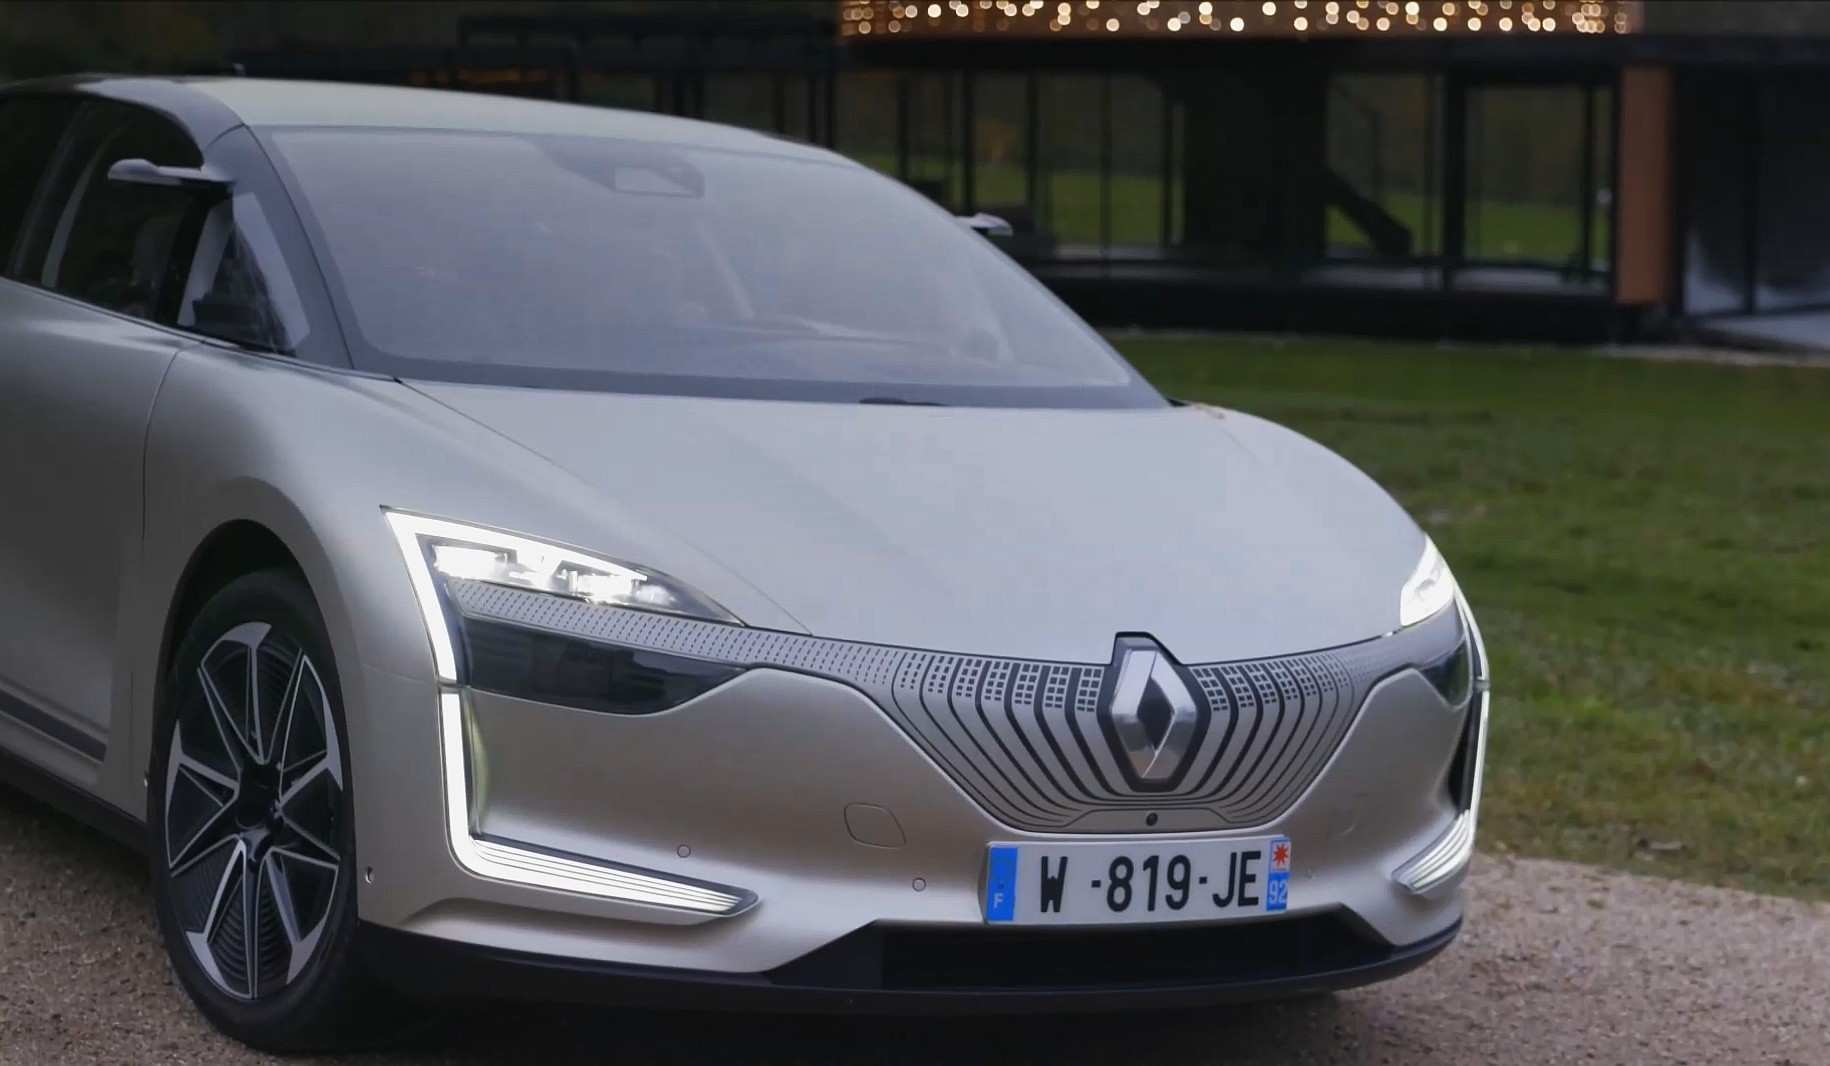 62 Best Review Renault Talisman 2020 Speed Test for Renault Talisman 2020